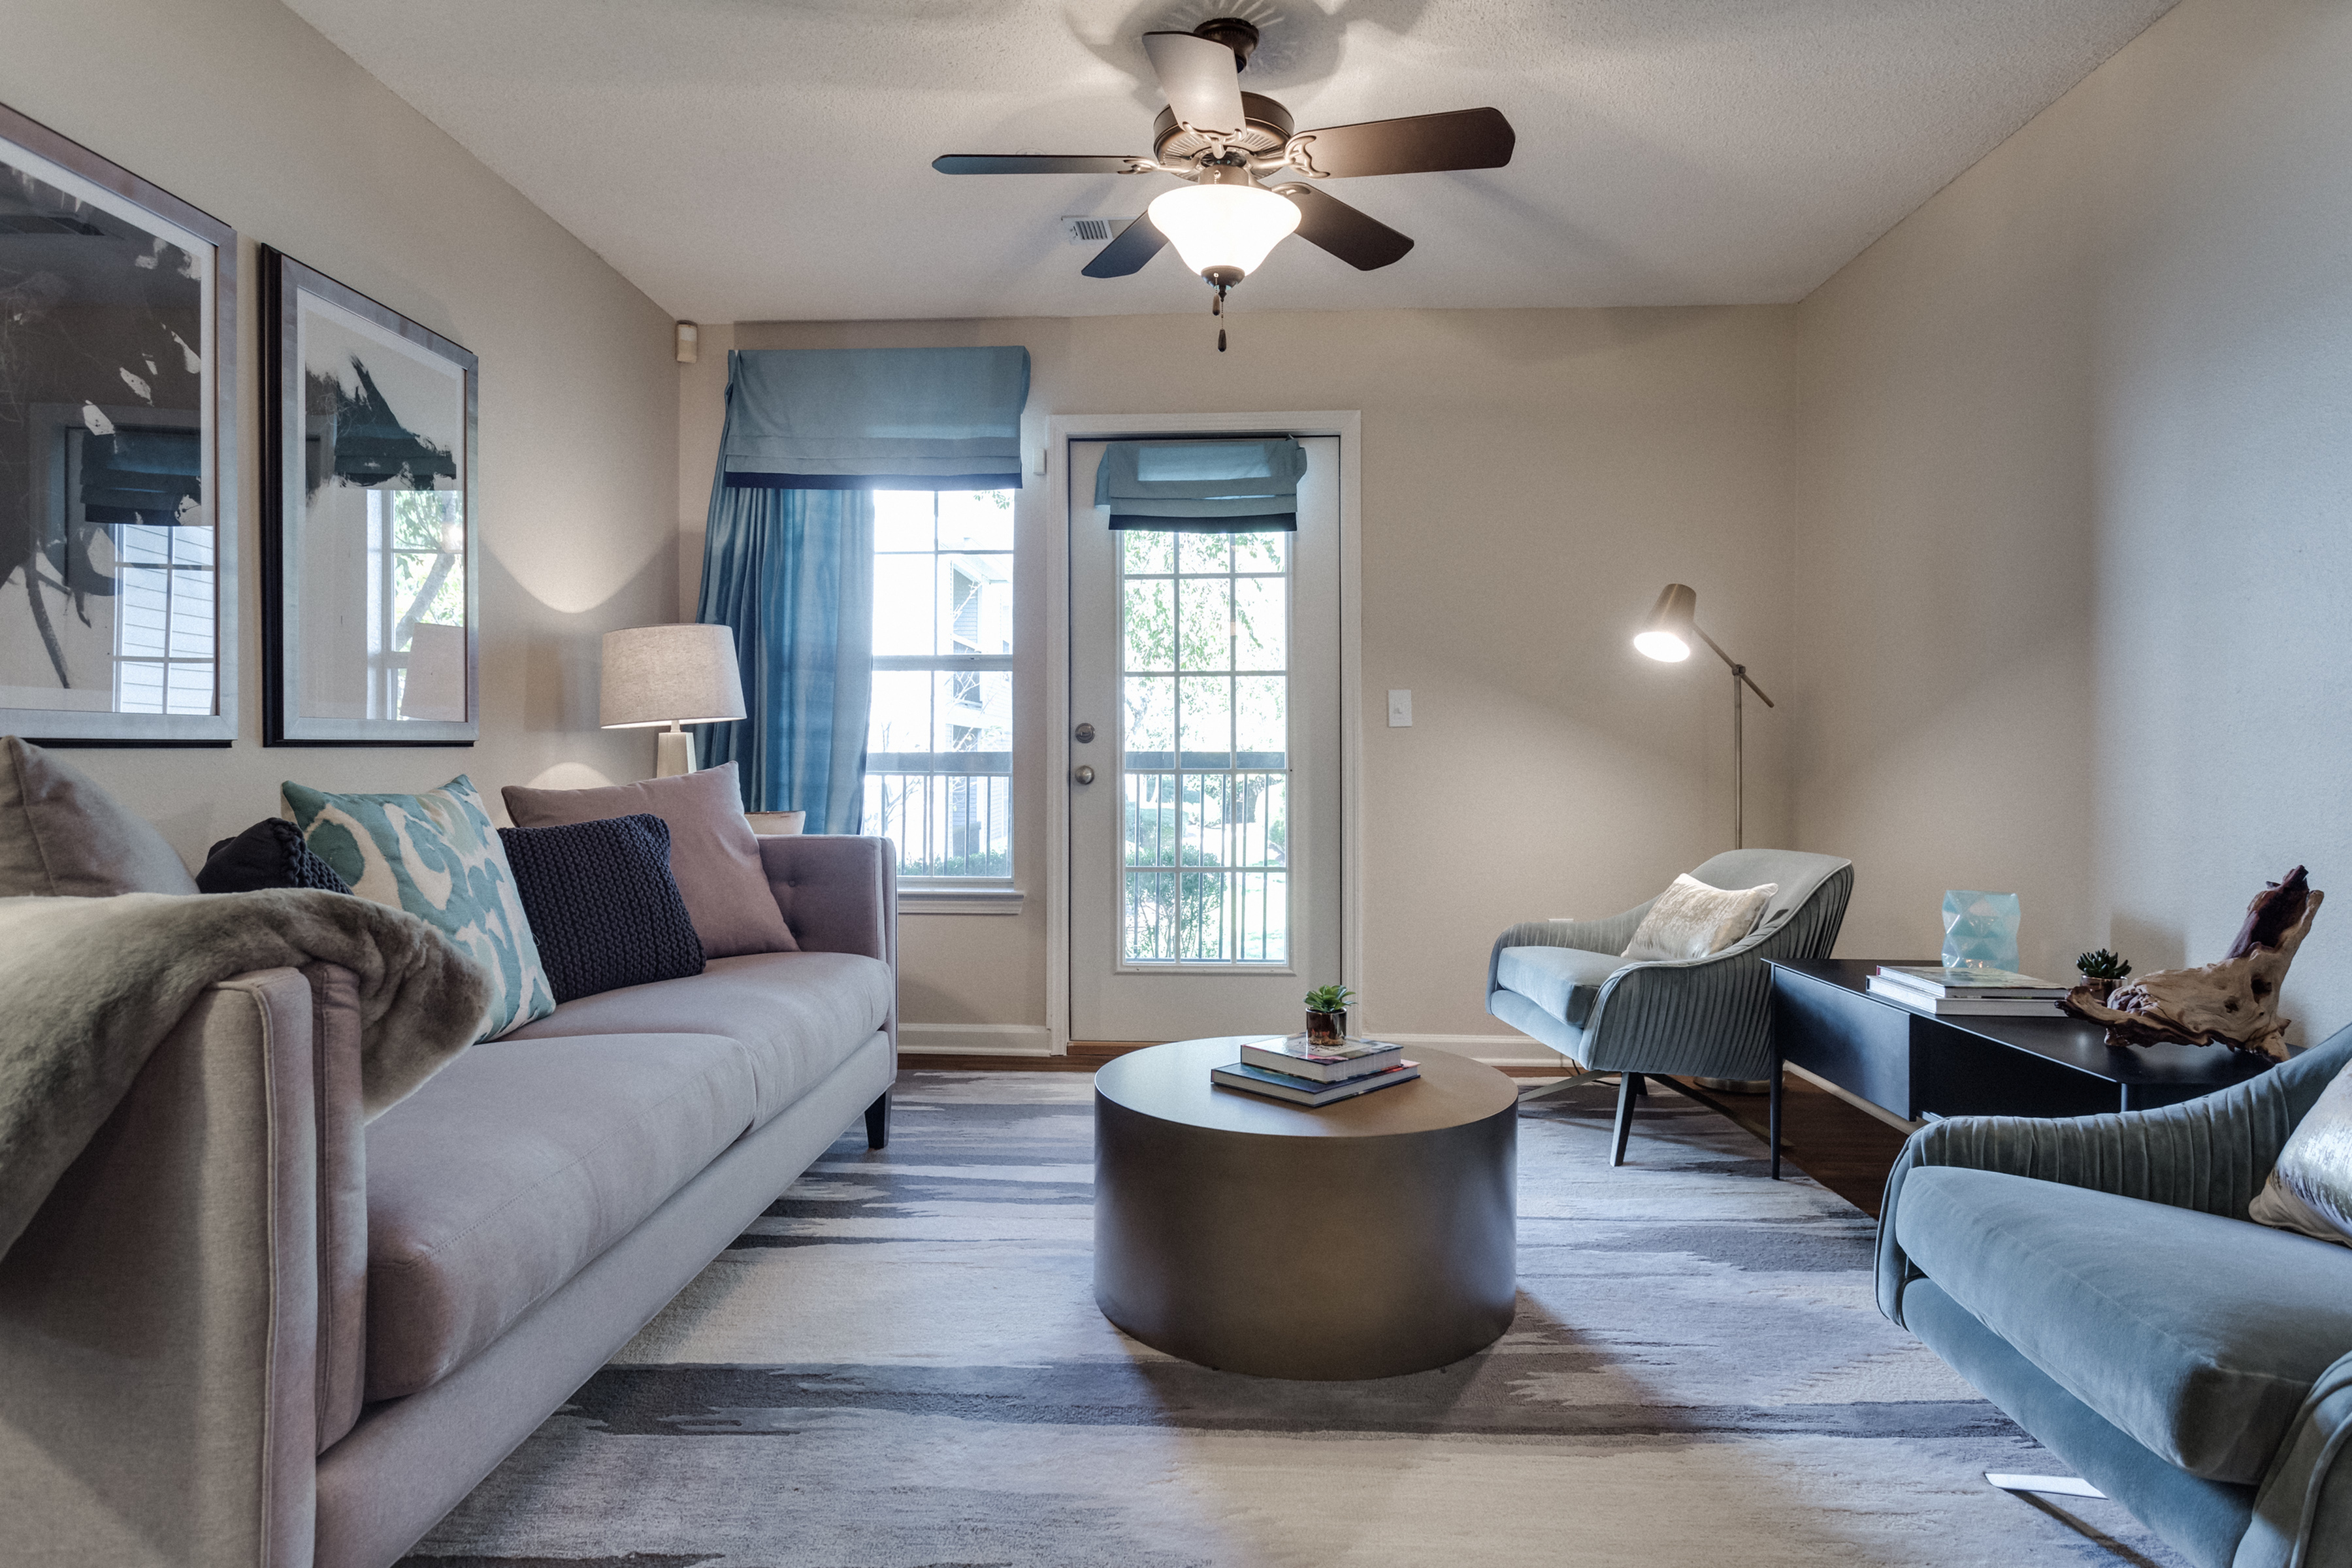 Merveilleux Apartments In Raleigh For Rent | Midtown Crossing